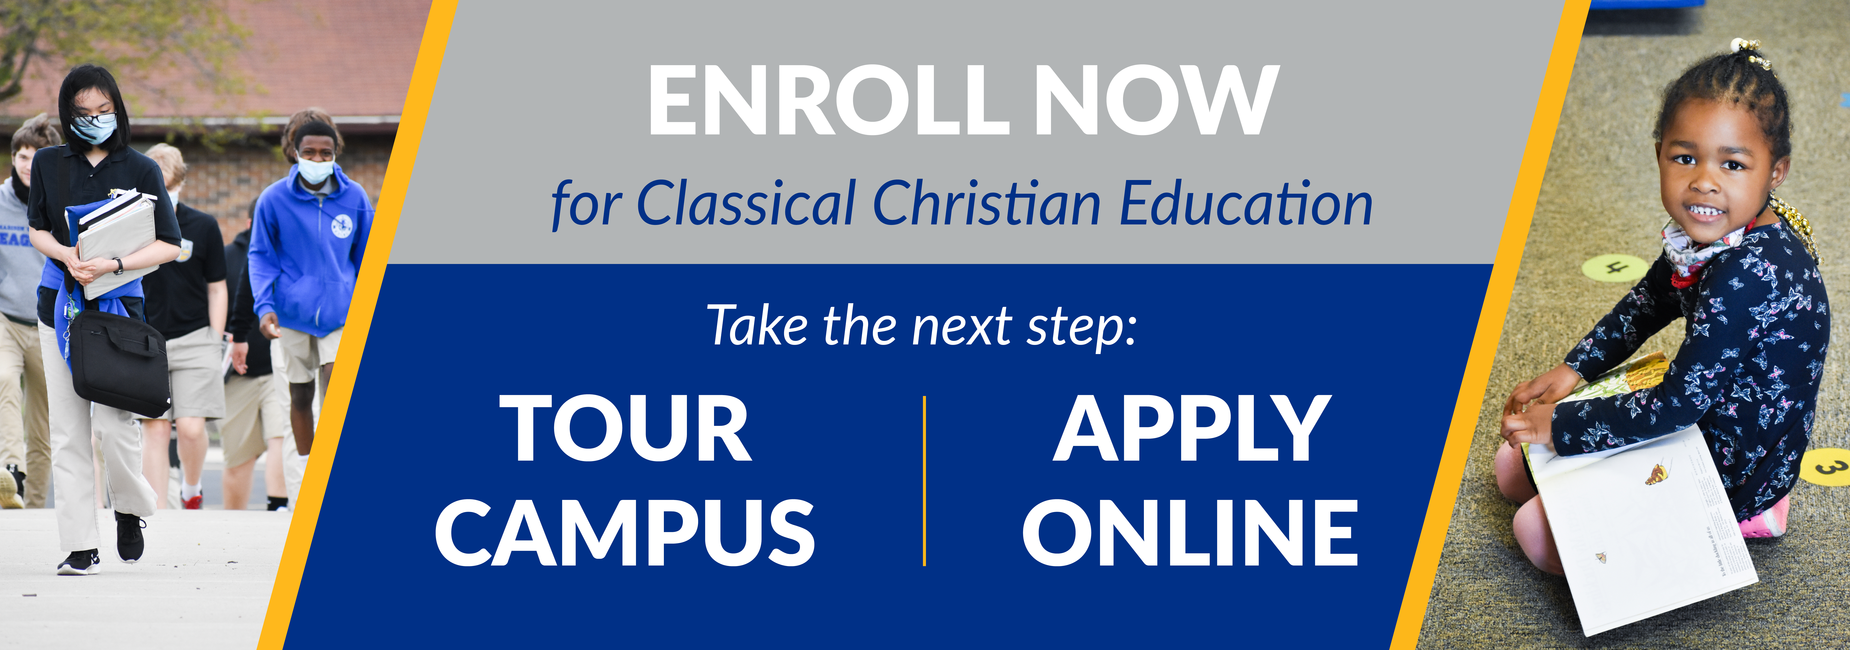 enroll now for classical christian education